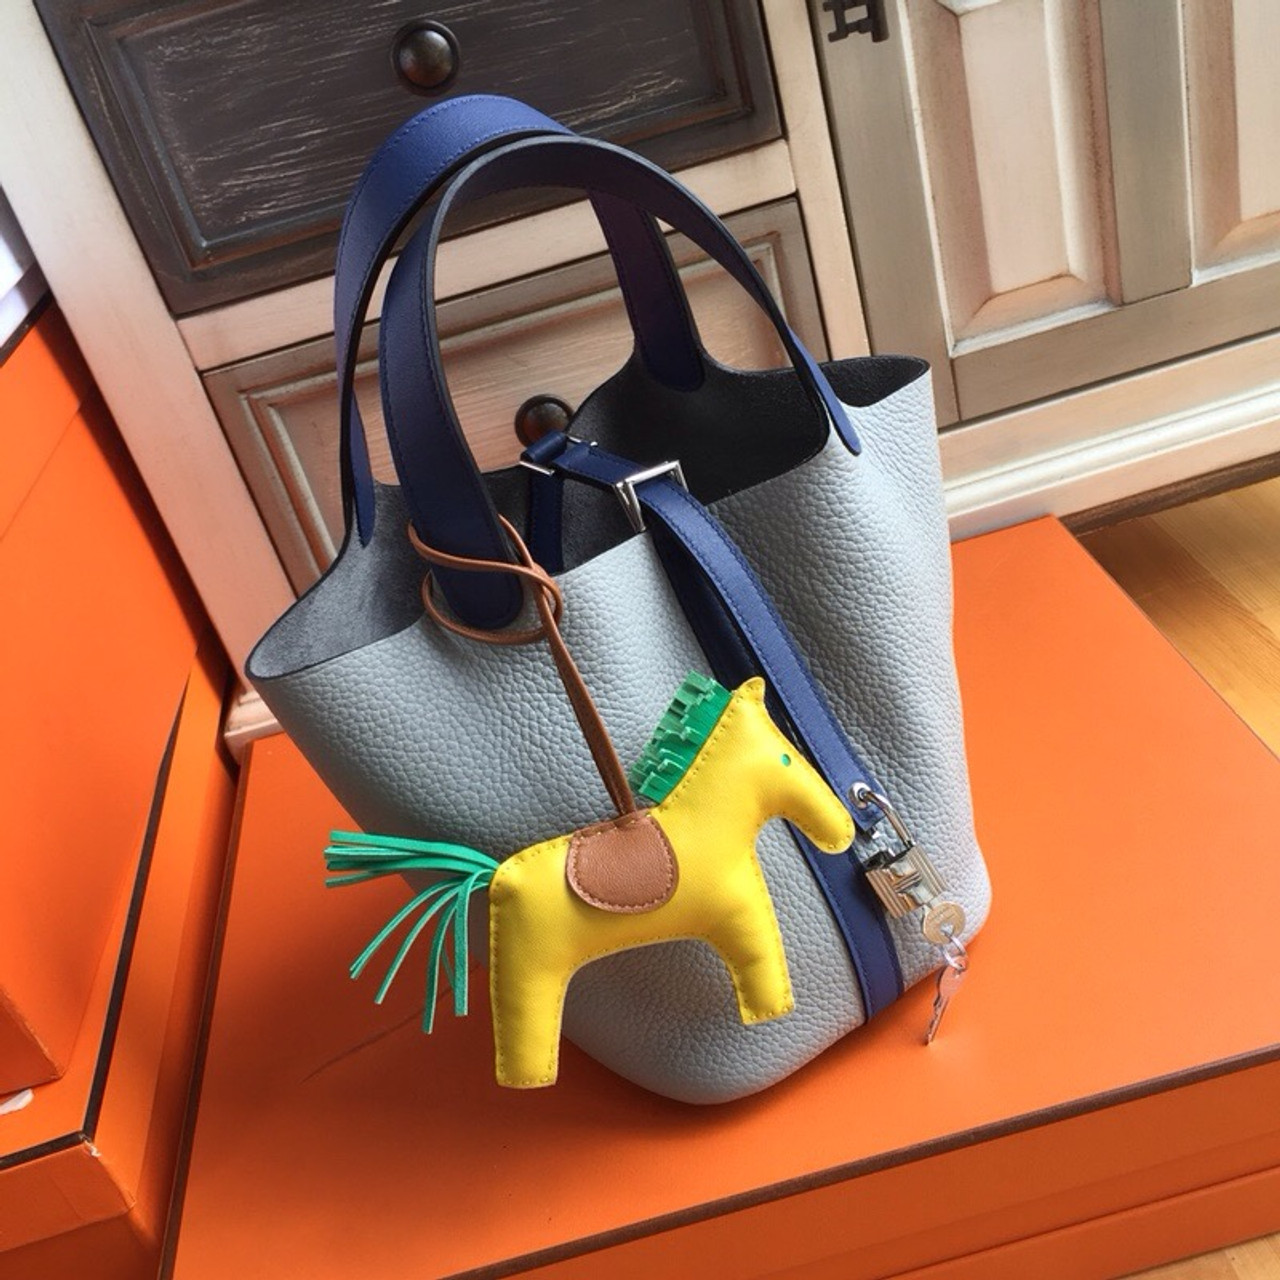 c6b4b821109a Hermes Pearl Grey  Blue Saphir Picotin Lock MM Togo Leather Bag ...